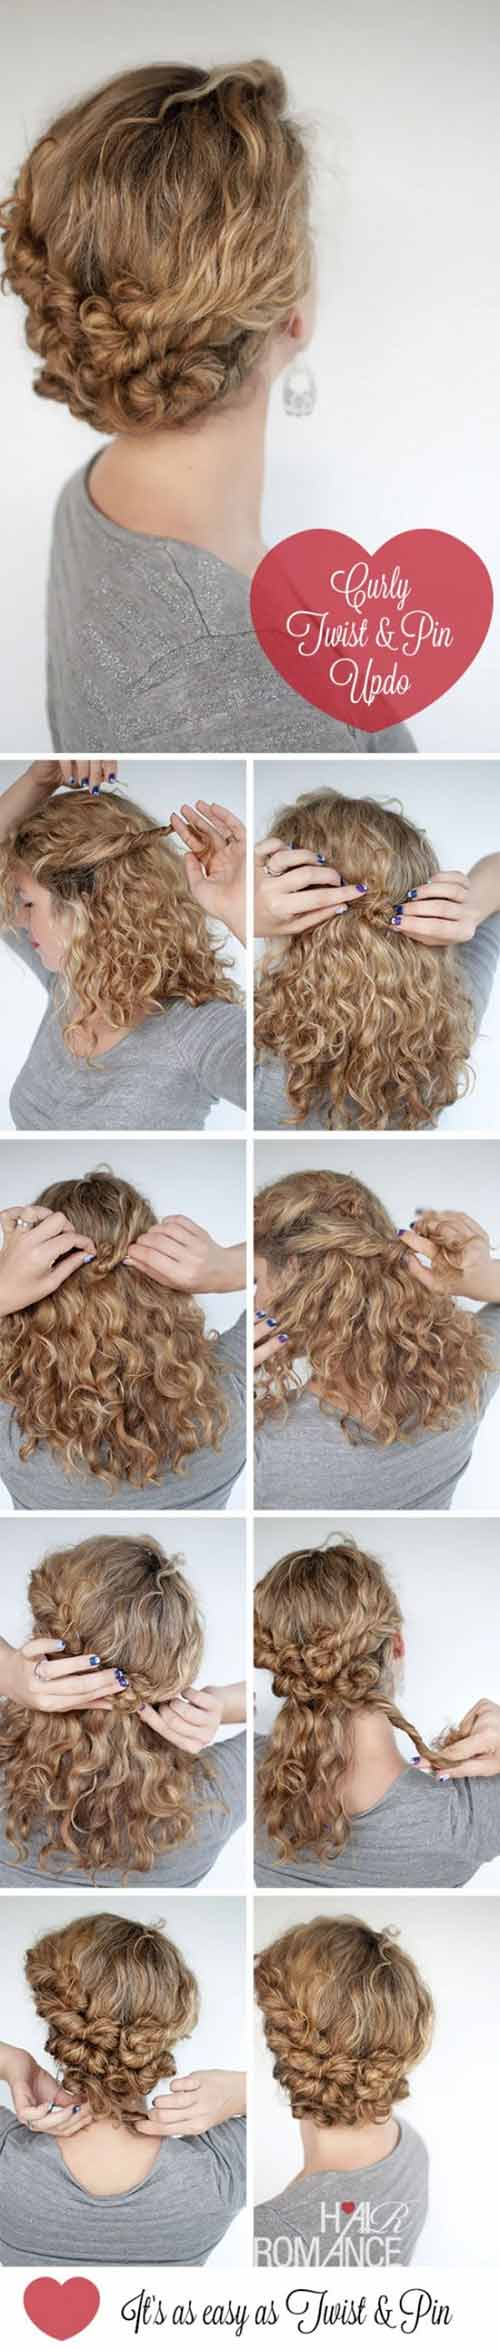 10 Incredibly Stunning DIY Updos For Curly Hair